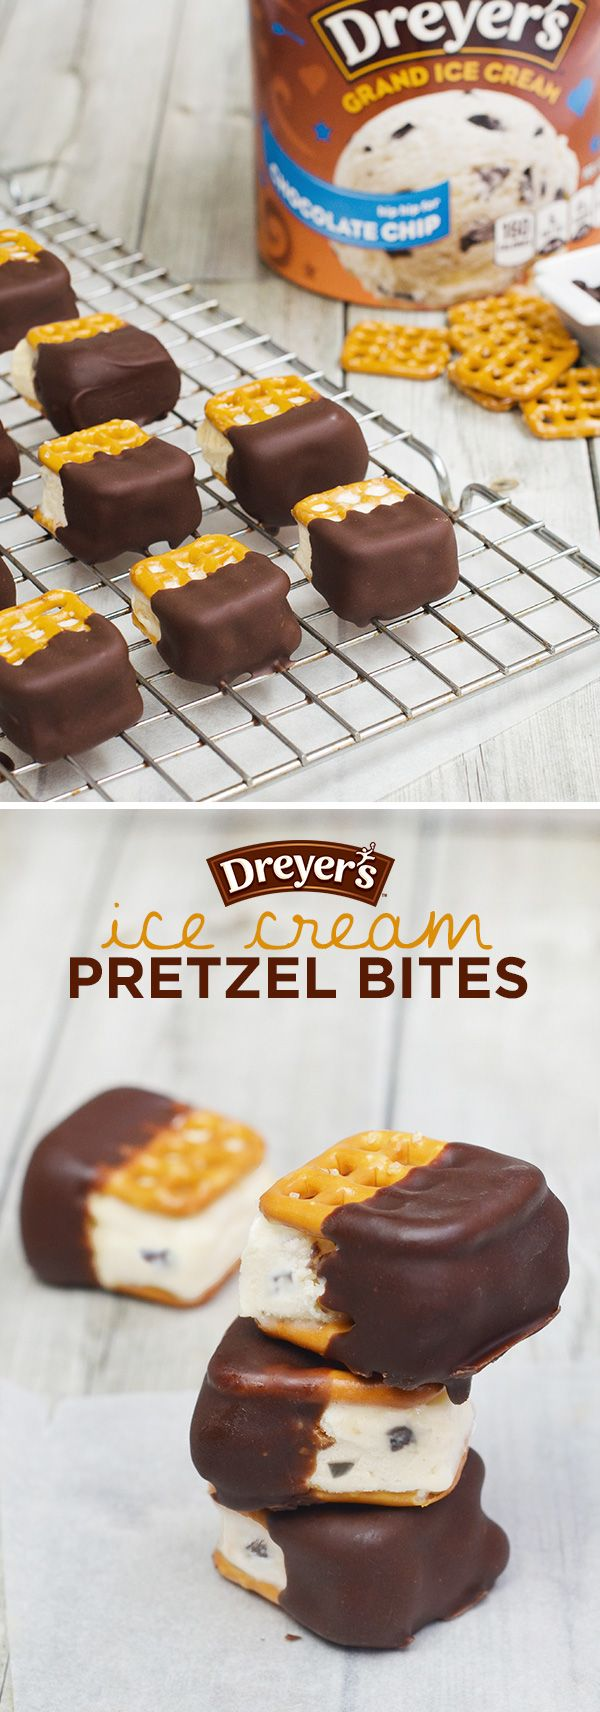 Dreyer's Ice Cream Pretzel Bites: A mini scoop of Dreyer's Grand Chocolate Chip Ice Cream looks so tasty between two bite-sized waffle pretzels. Jazz them up a bit by dipping each piece halfway into chocolate; then place them on a cookie rack and refreeze. Don't forget to share!